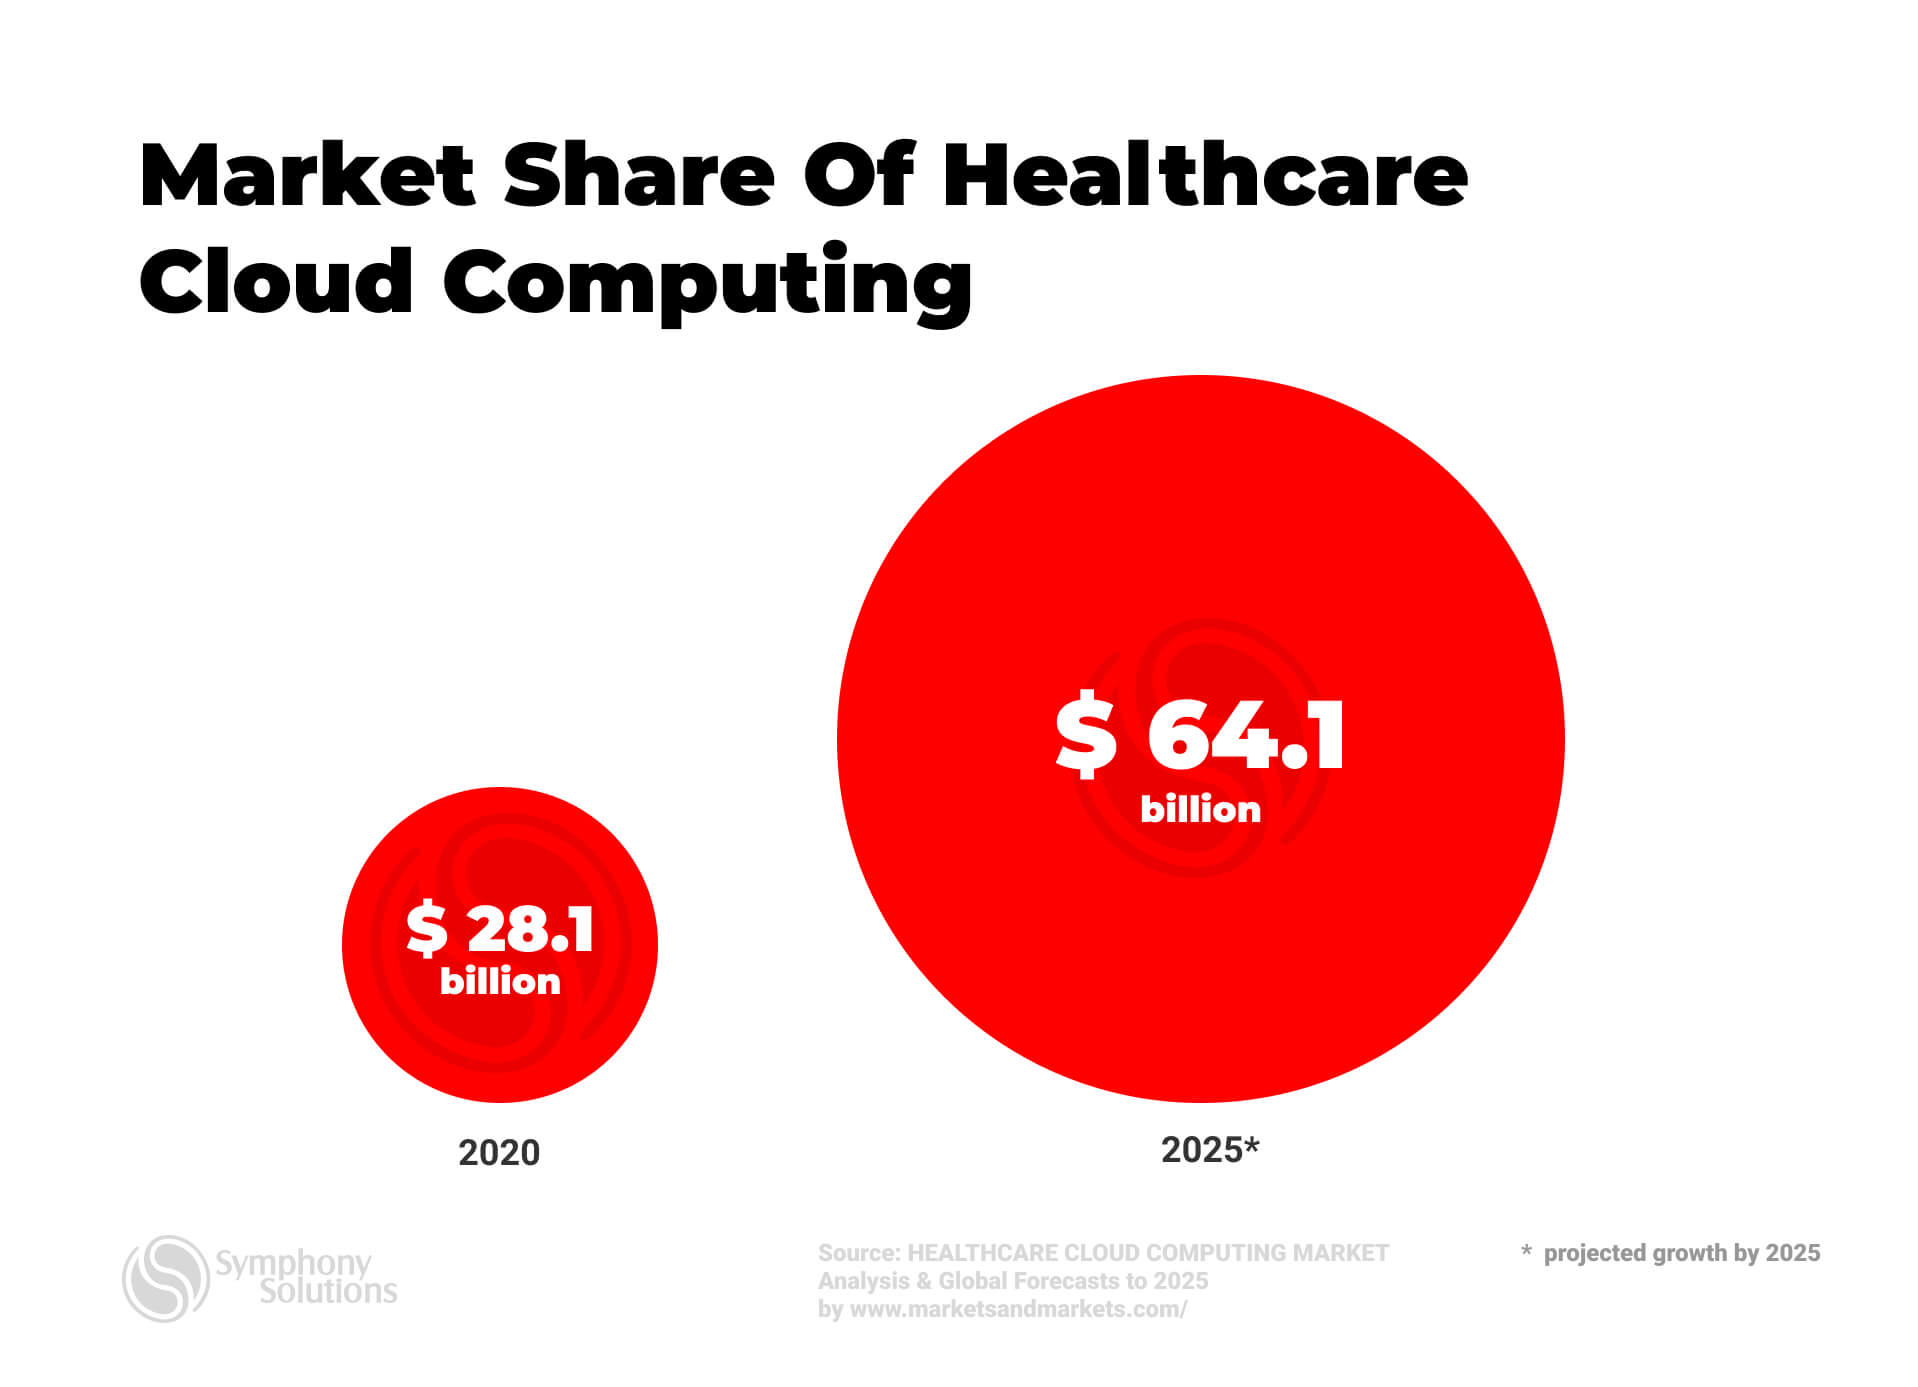 Market share of  cloud computing in healthcare